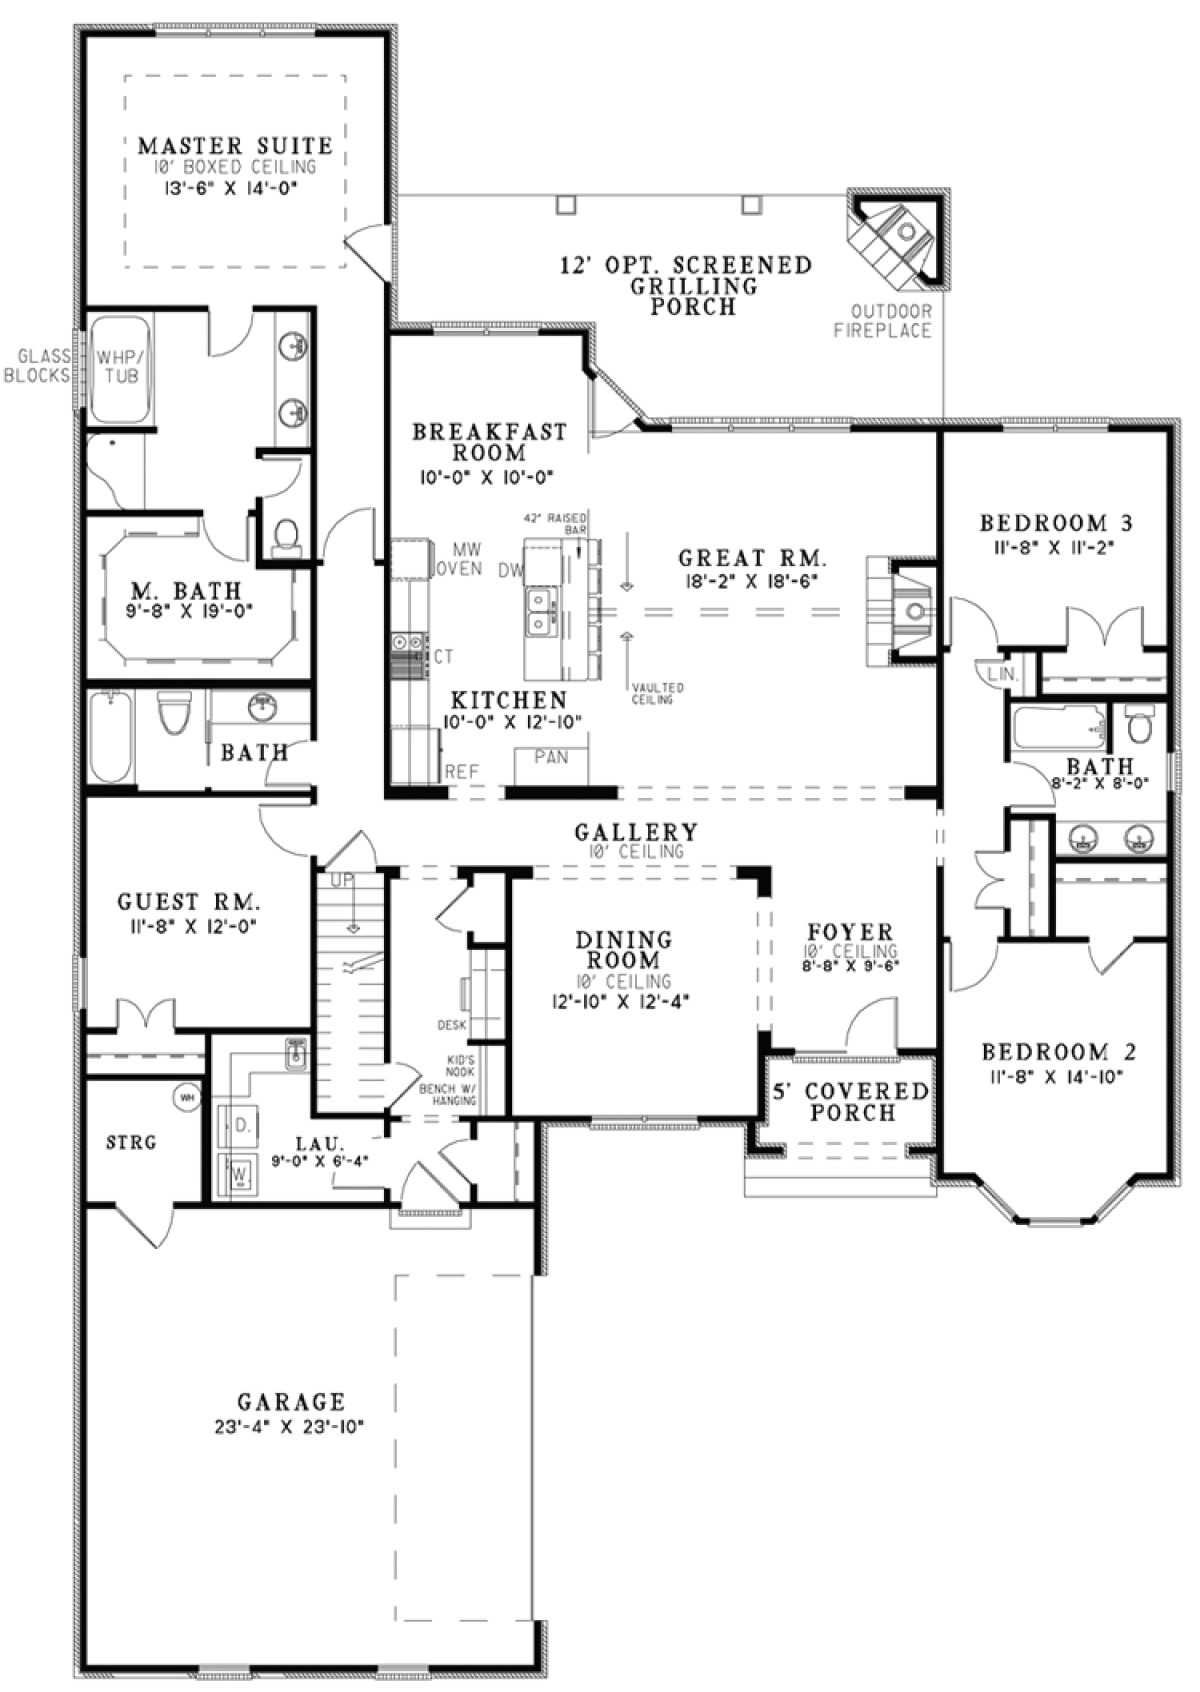 Home Plans with Prices to Build Floor Plans with Cost to Build In Floor Plans for Homes